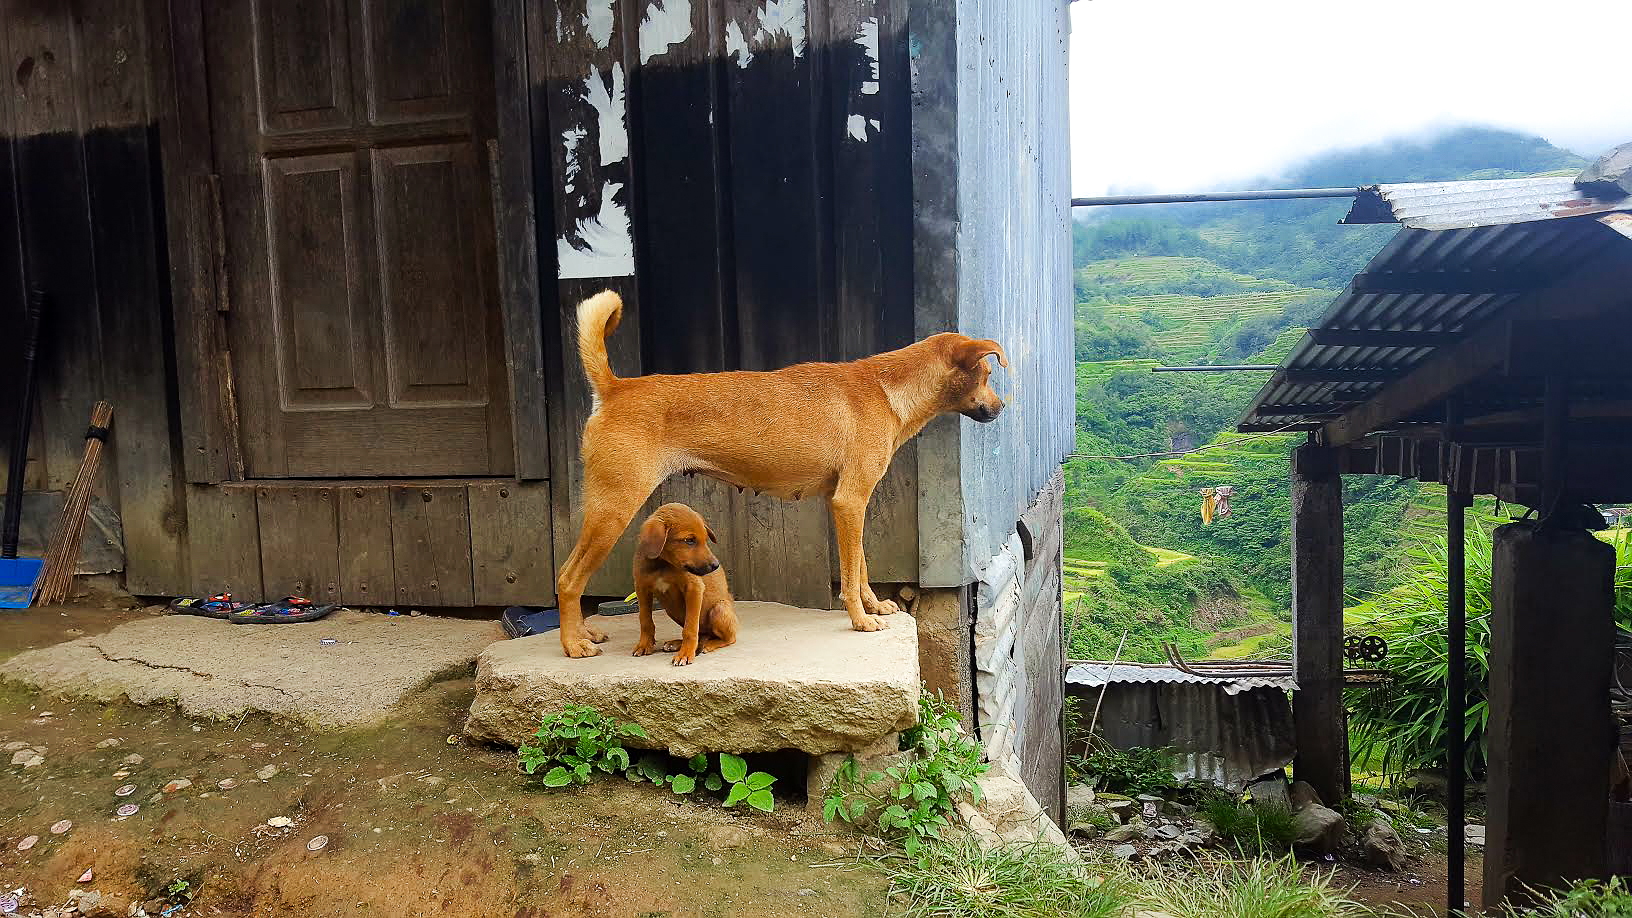 Even the dogs stop to admire the Banaue rice terraces